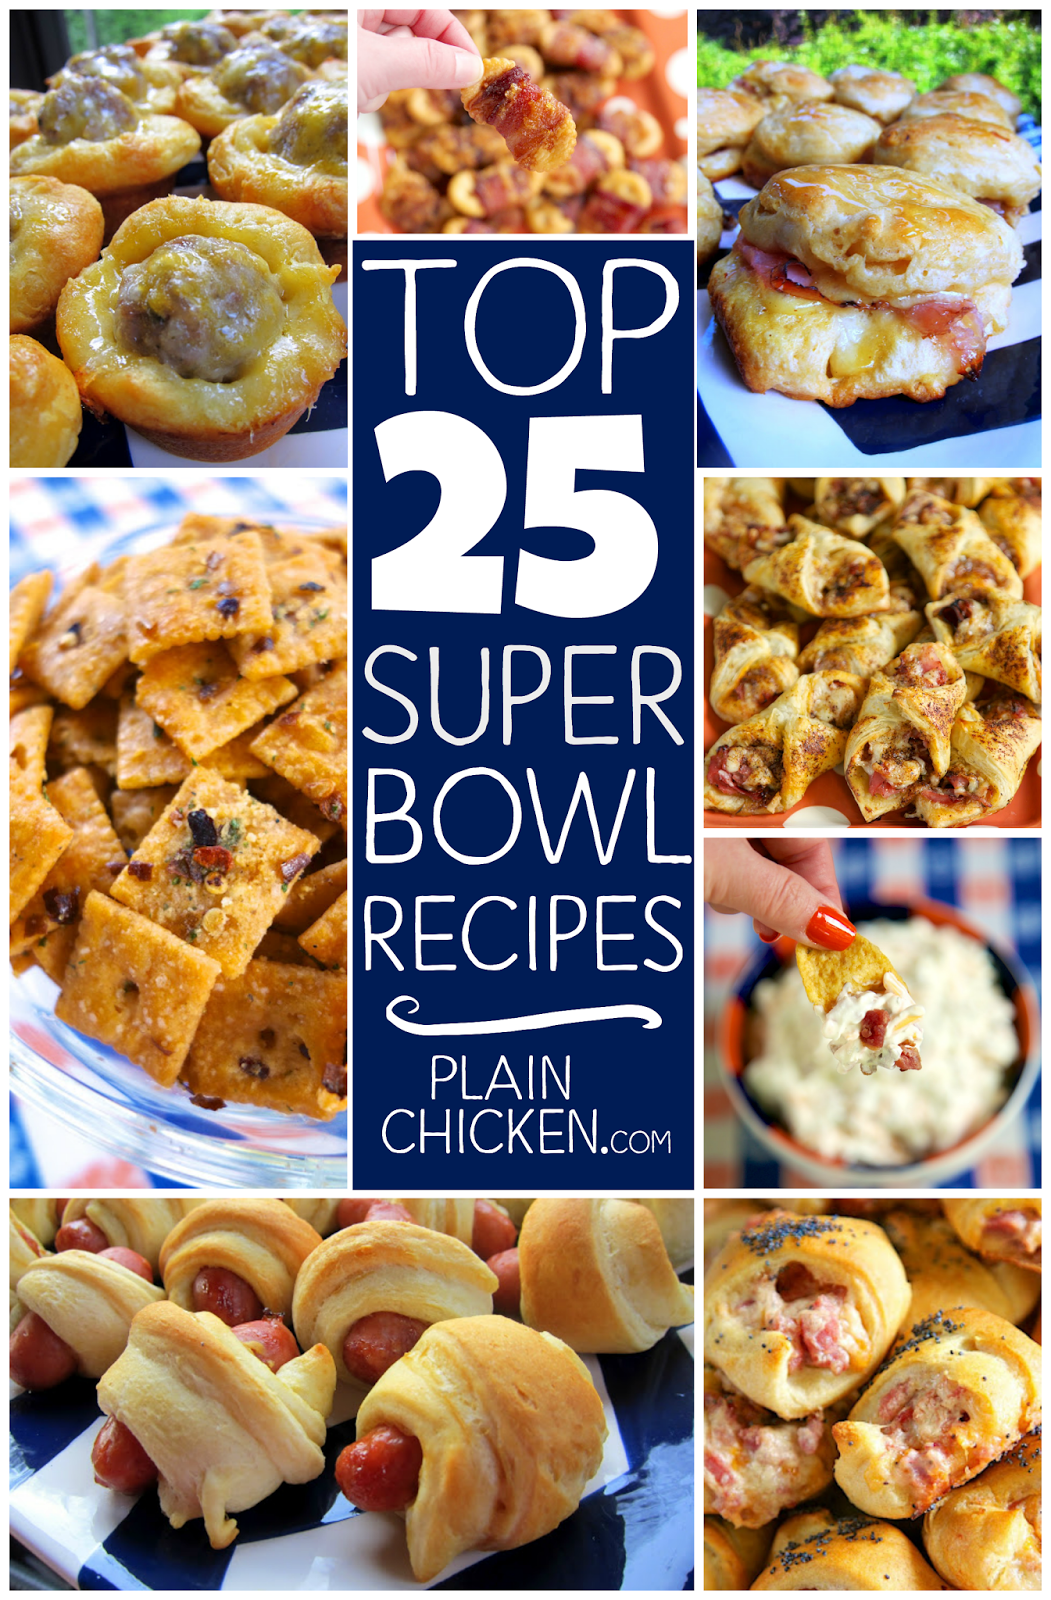 Top 25 Super Bowl Recipes - the best recipes for your Super Bowl party! All recipes are guaranteed to be a hit! Everyone will rave about them!!